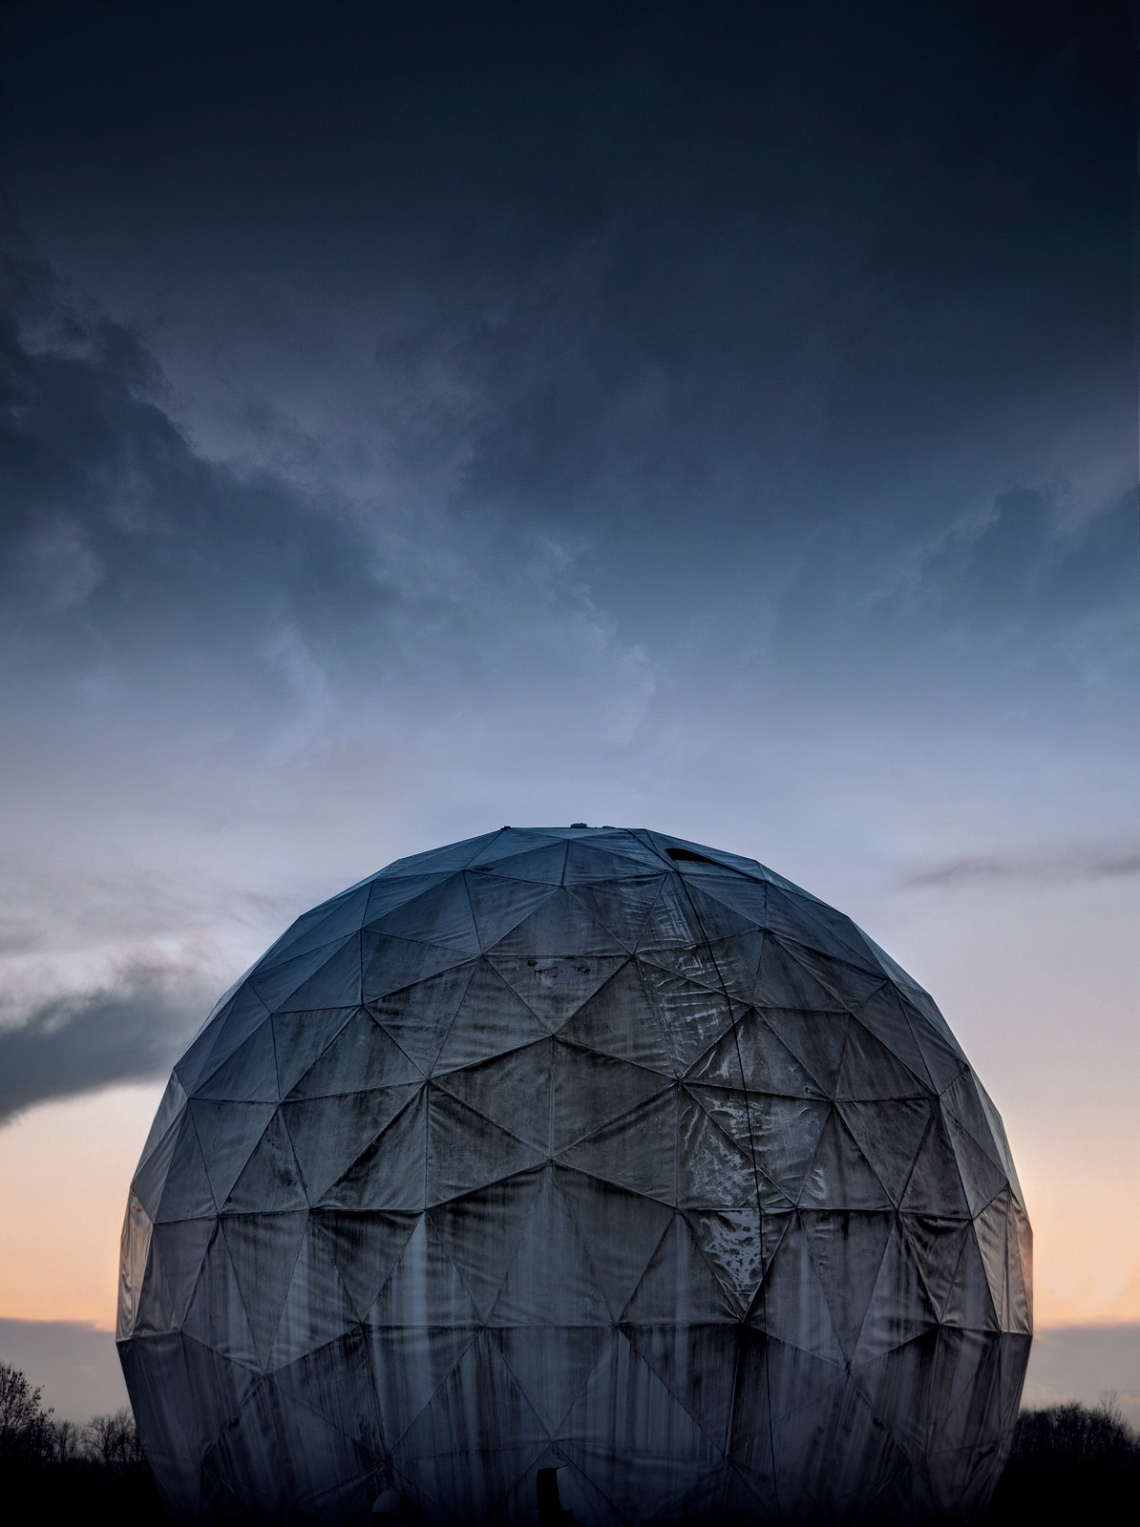 Radar Dome Exterior. Photograph by Forgotten Heritage Photography. Used with permission.